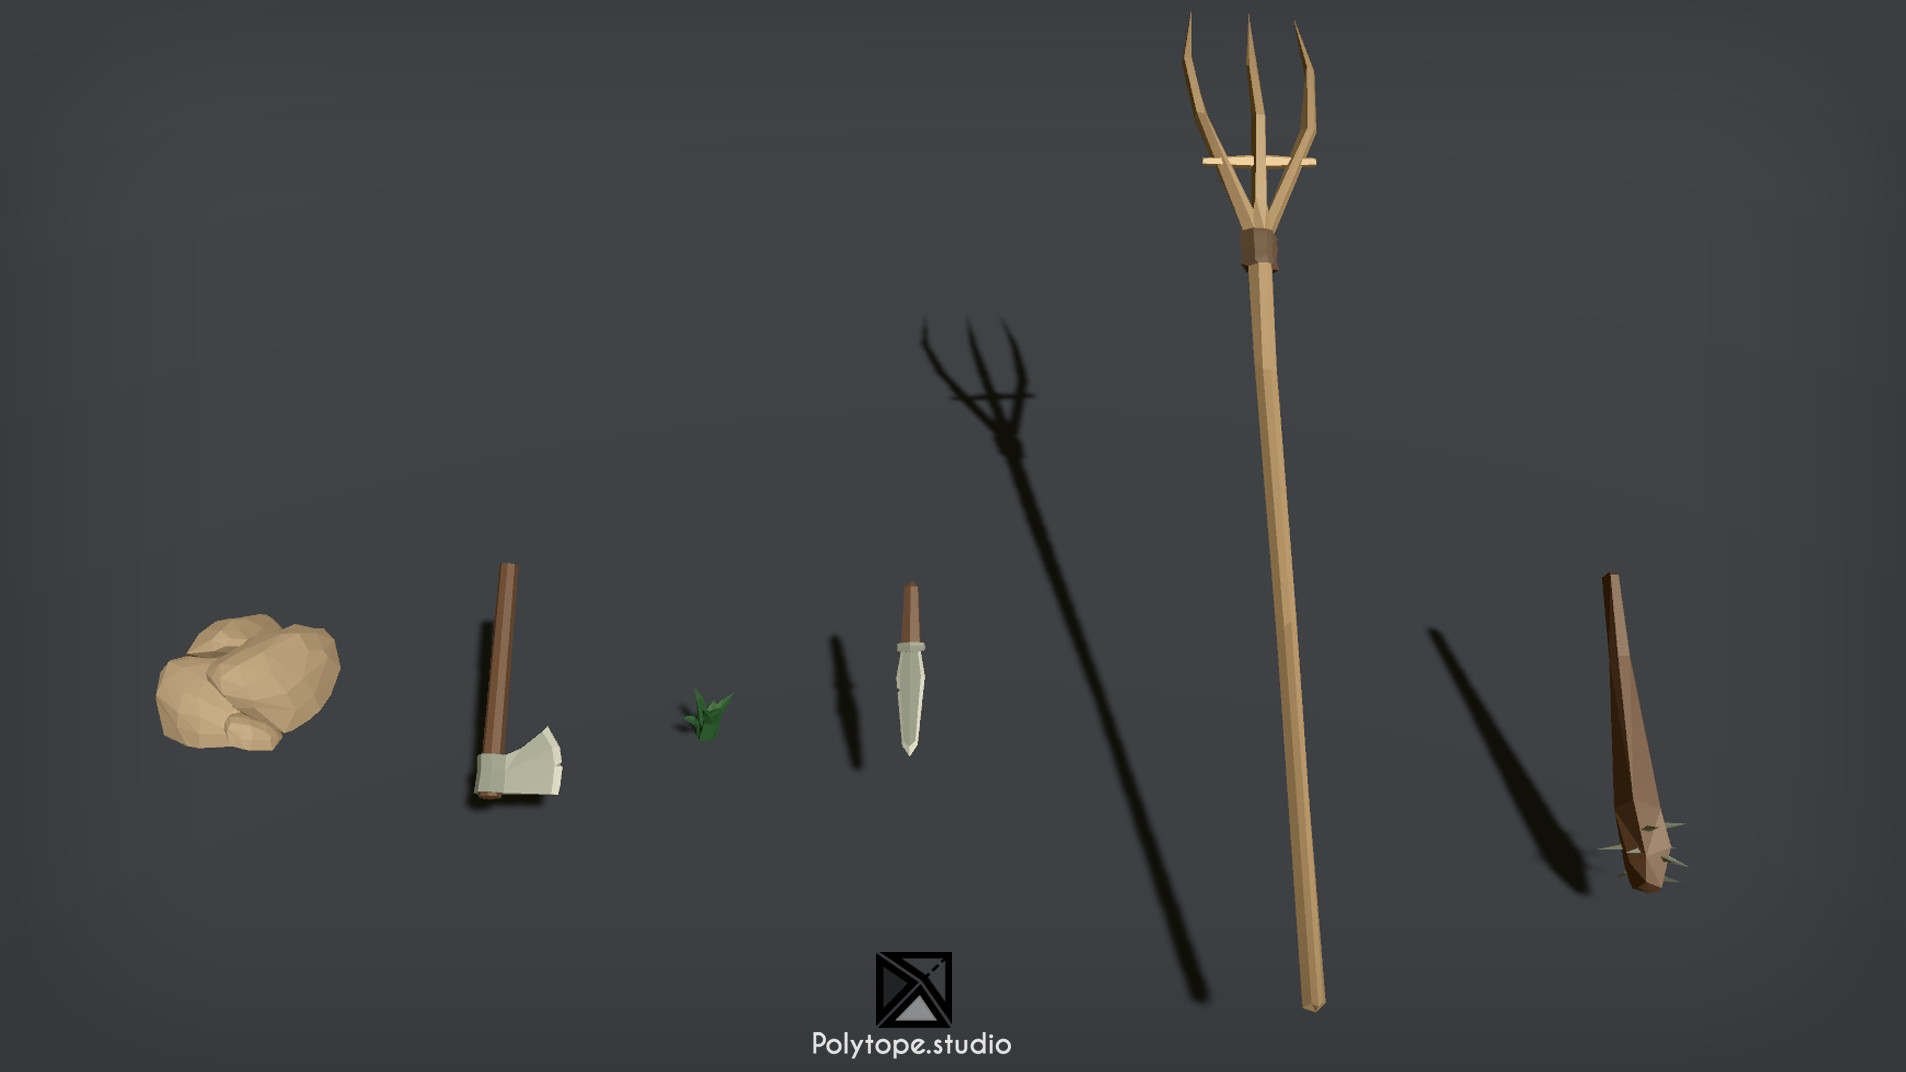 Polytope studio pt medieval peasant weapons props